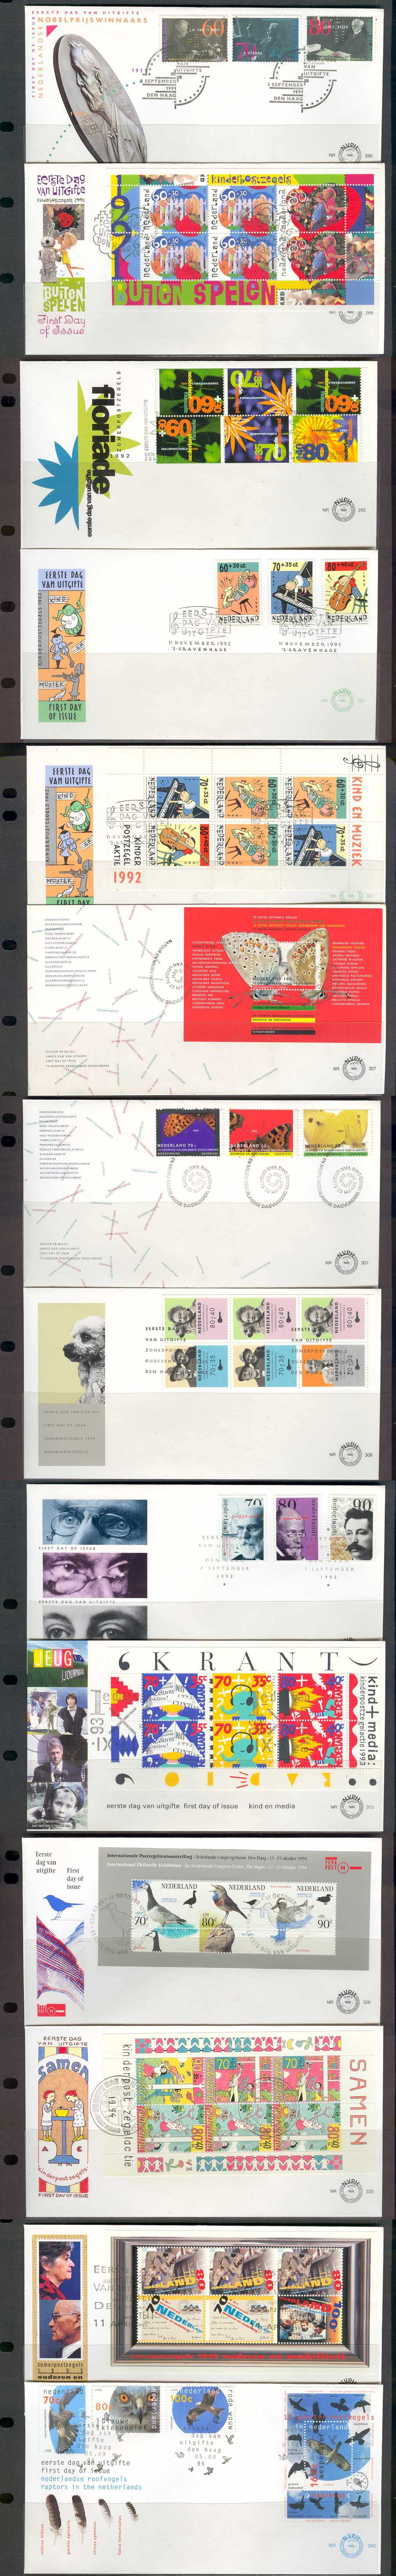 Netherlands 1991-95 cachtd unadd FD 5 sets 10 ss